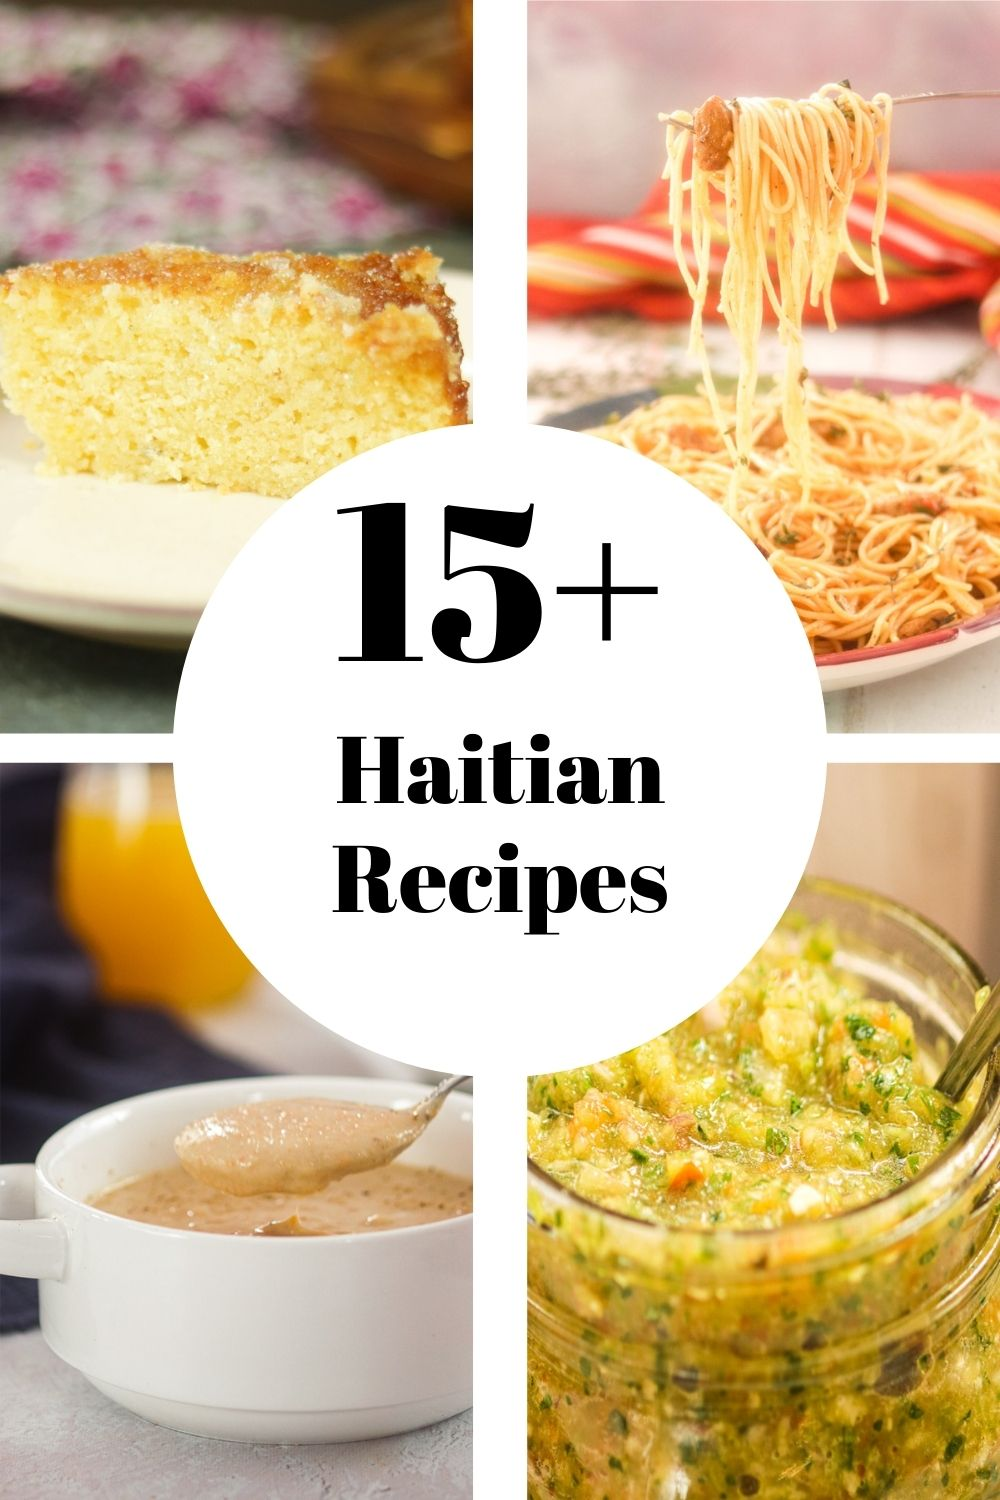 4 Haitian Recipes with text